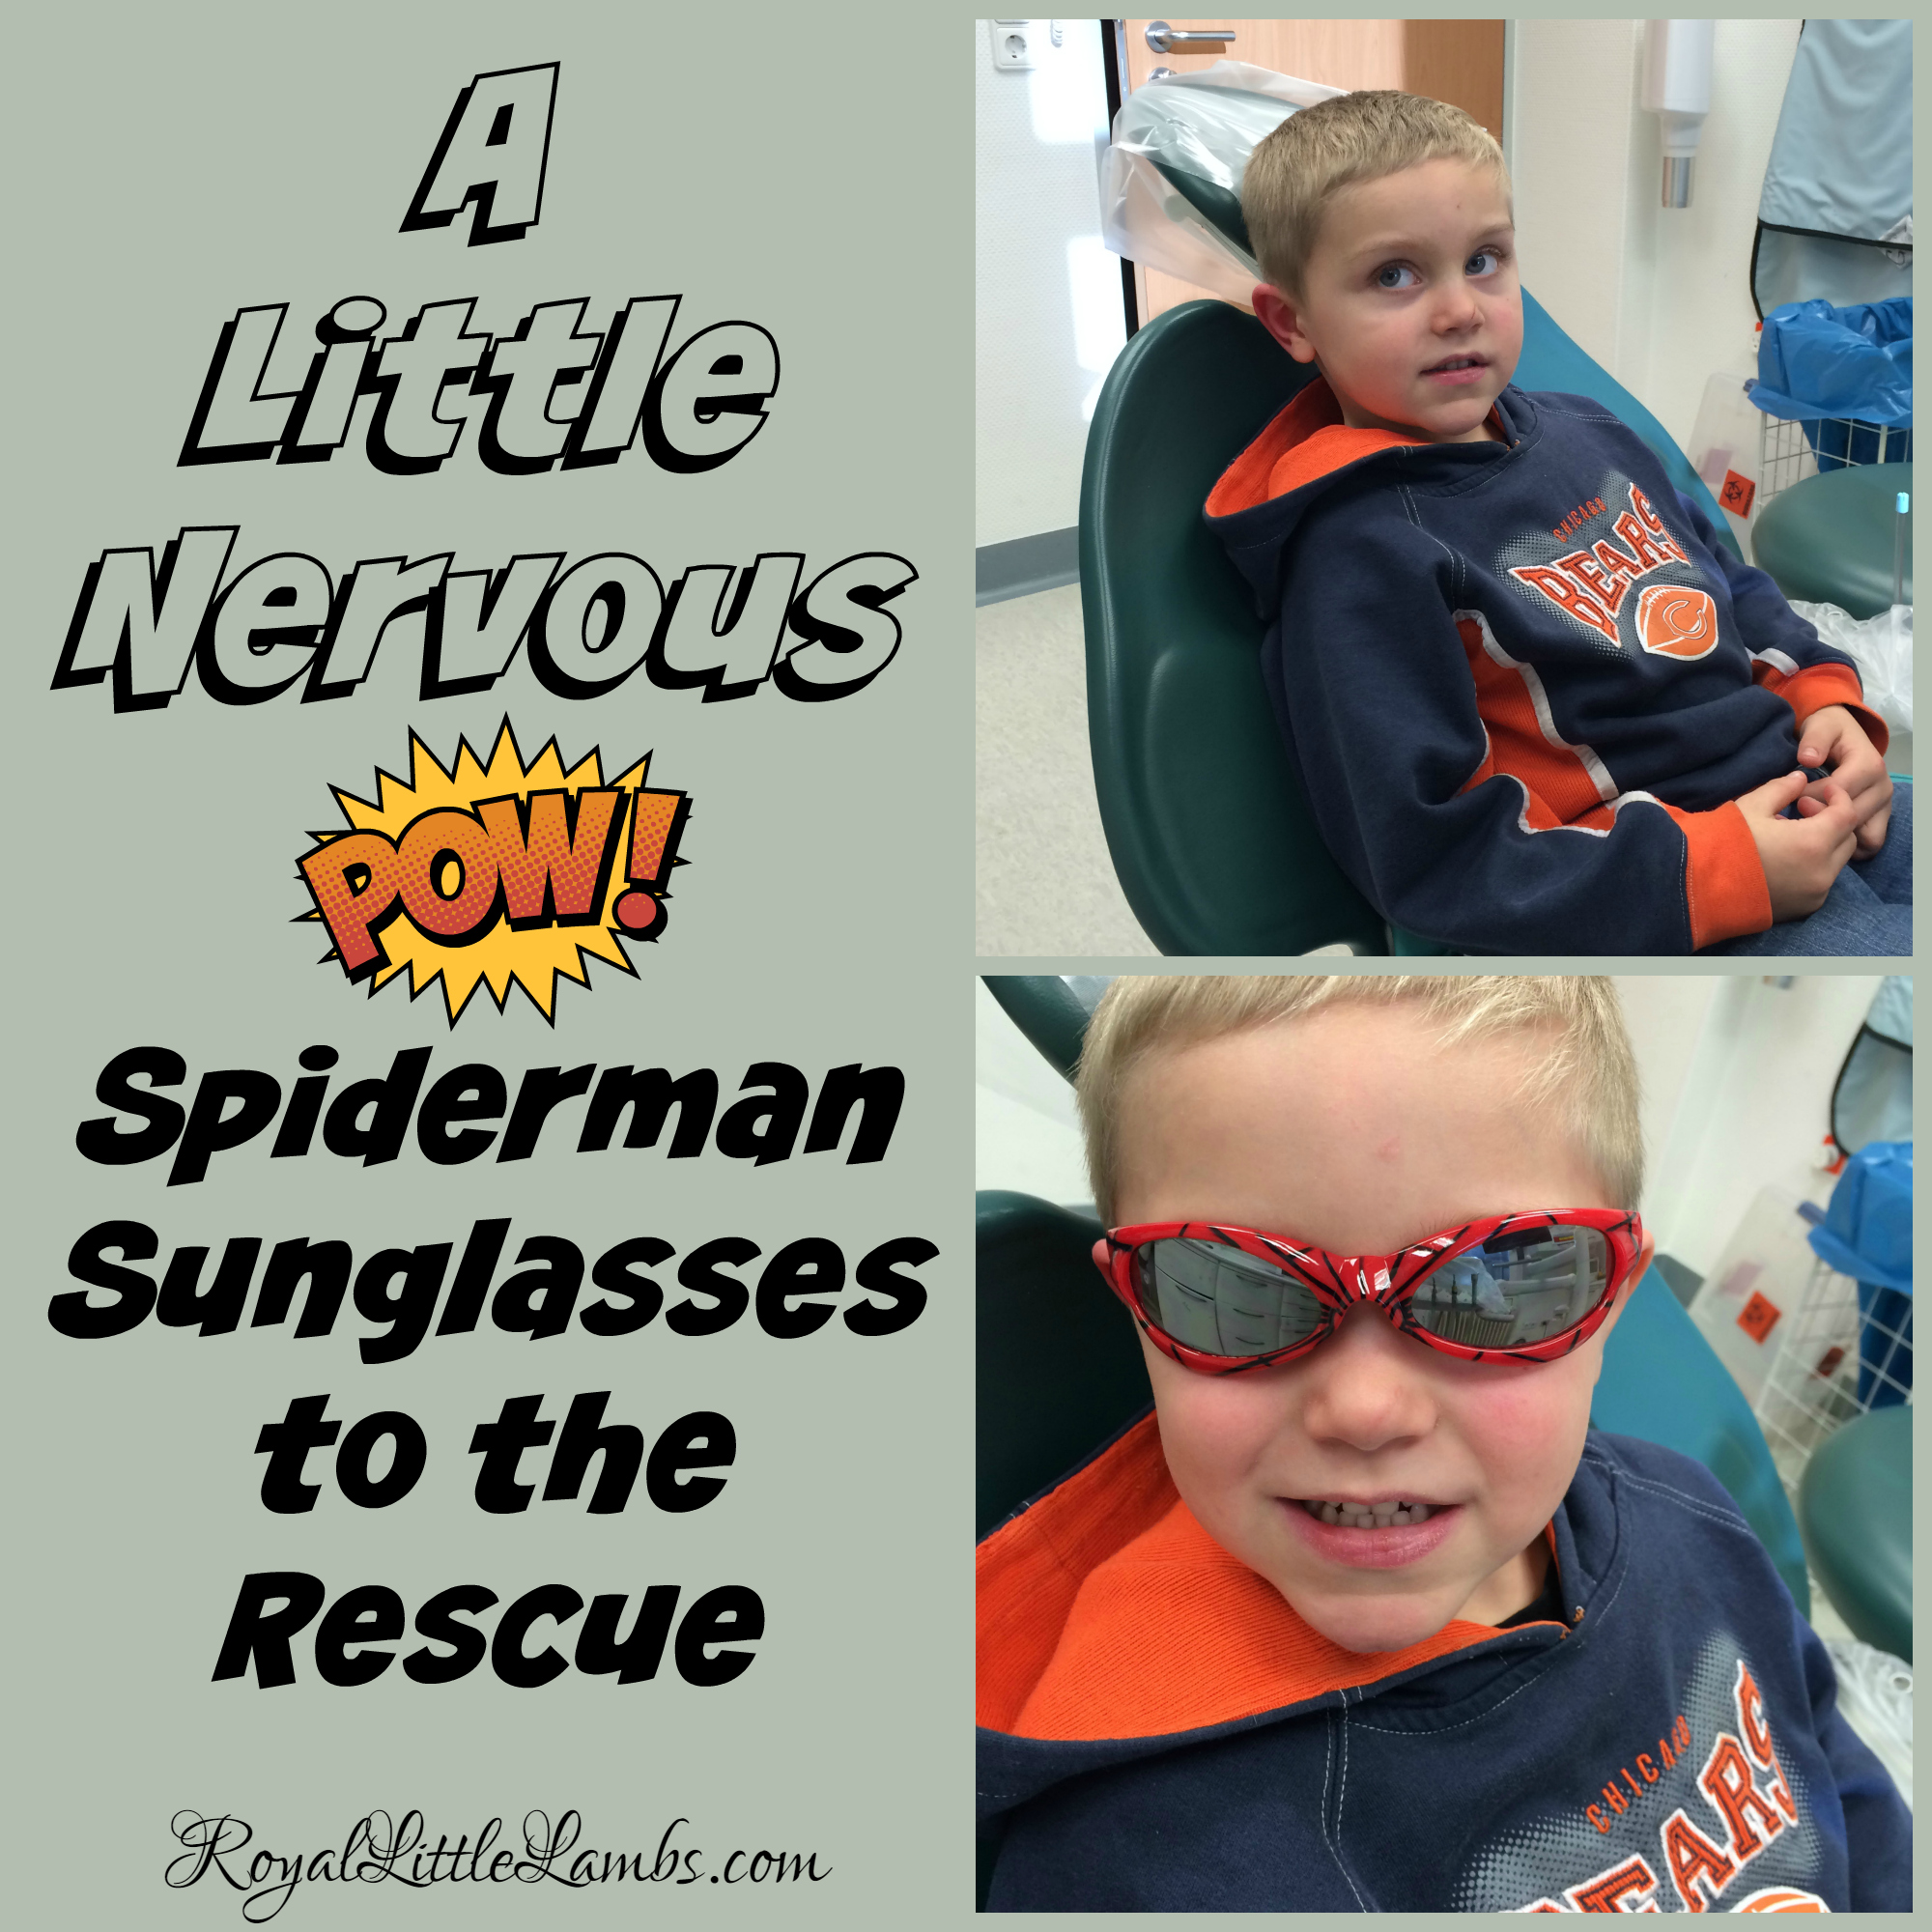 Spiderman Sunglasses to the Rescue